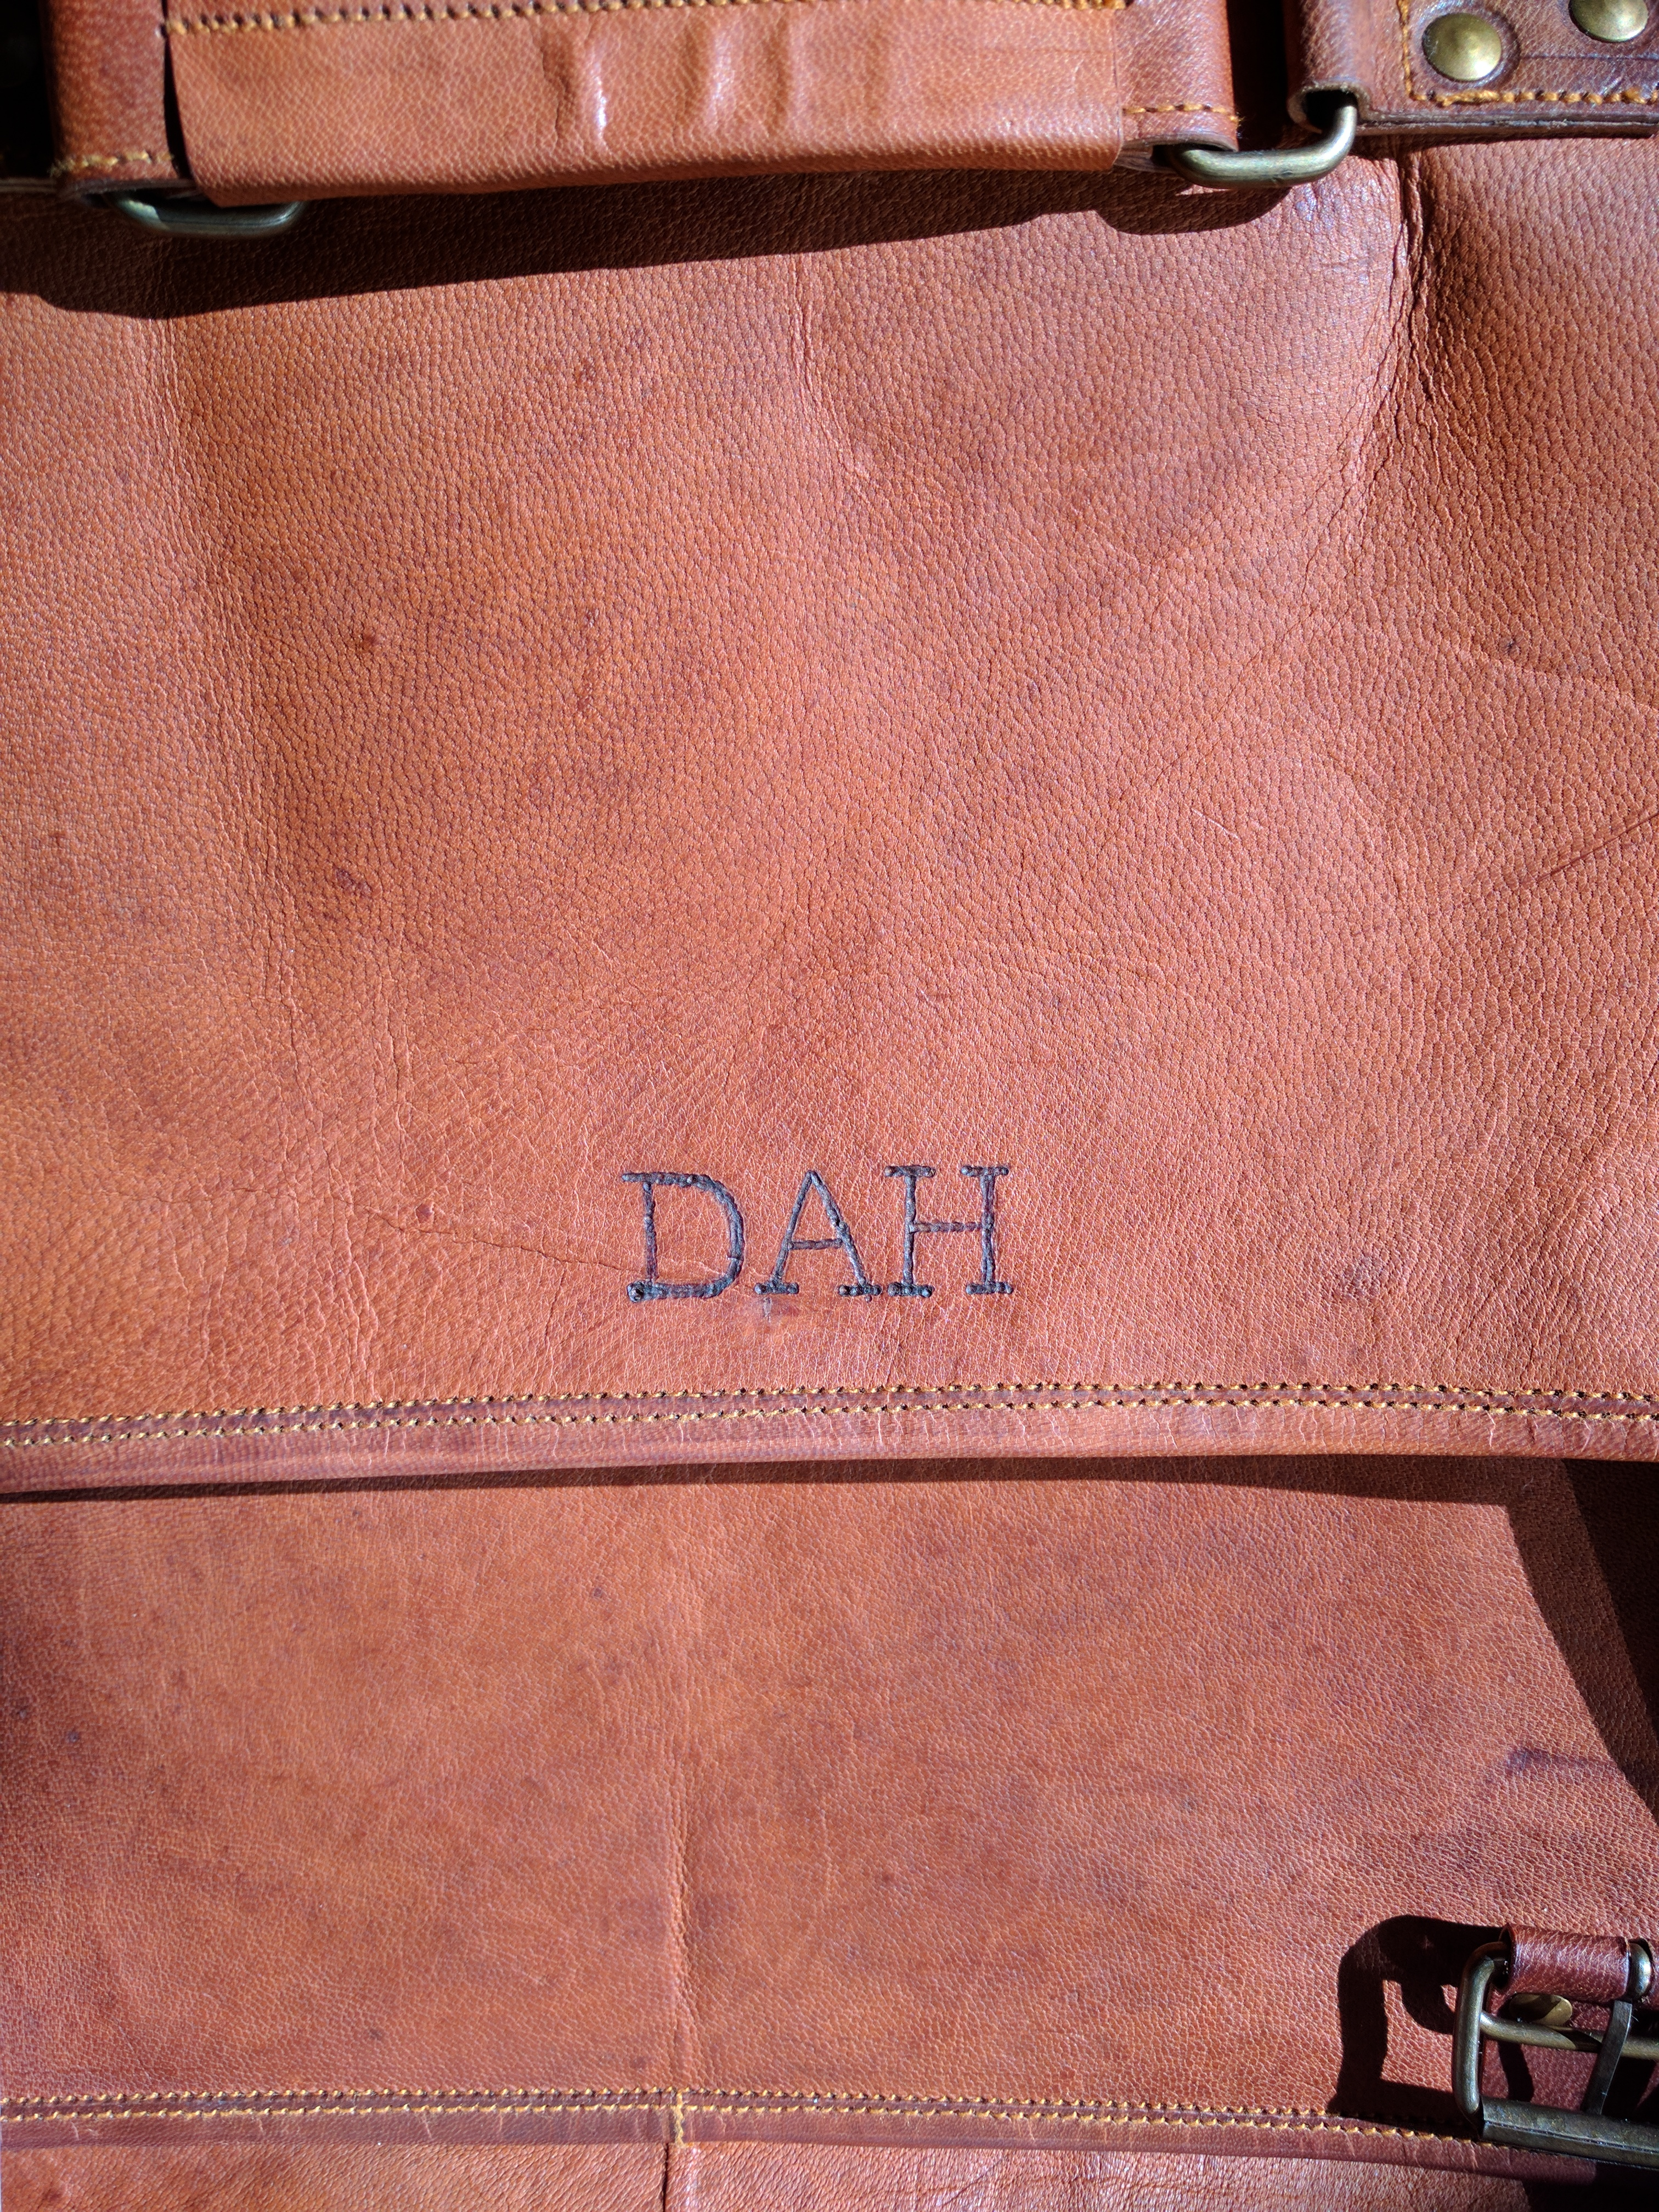 A Monogrammed Briefcase for a Special Client is a Perfect Gift